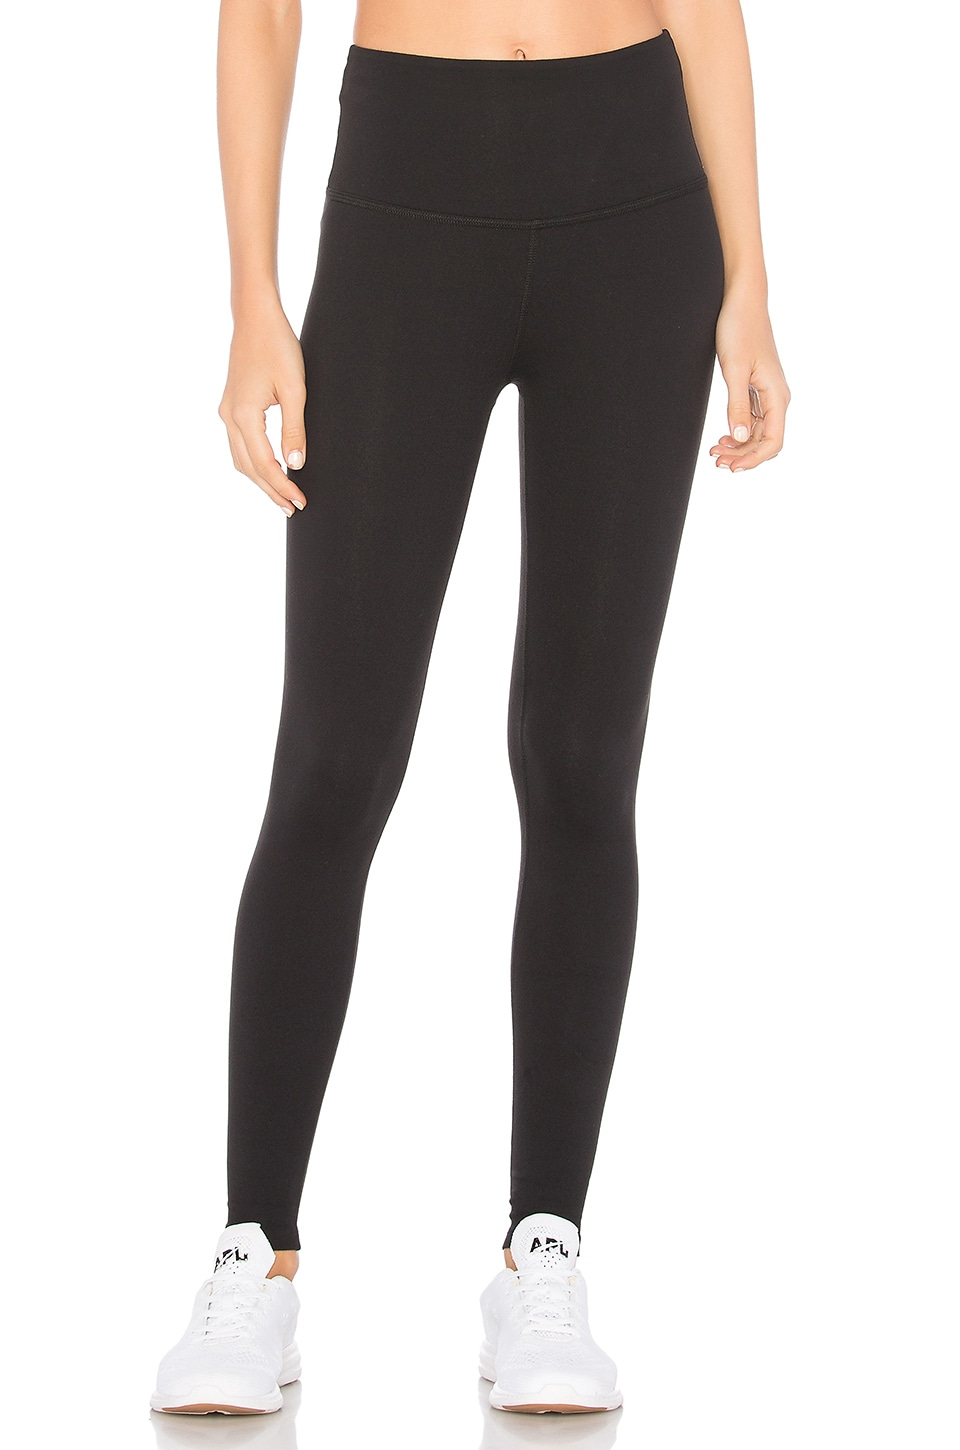 Beyond Yoga High Waisted Midi Legging in Jet Black